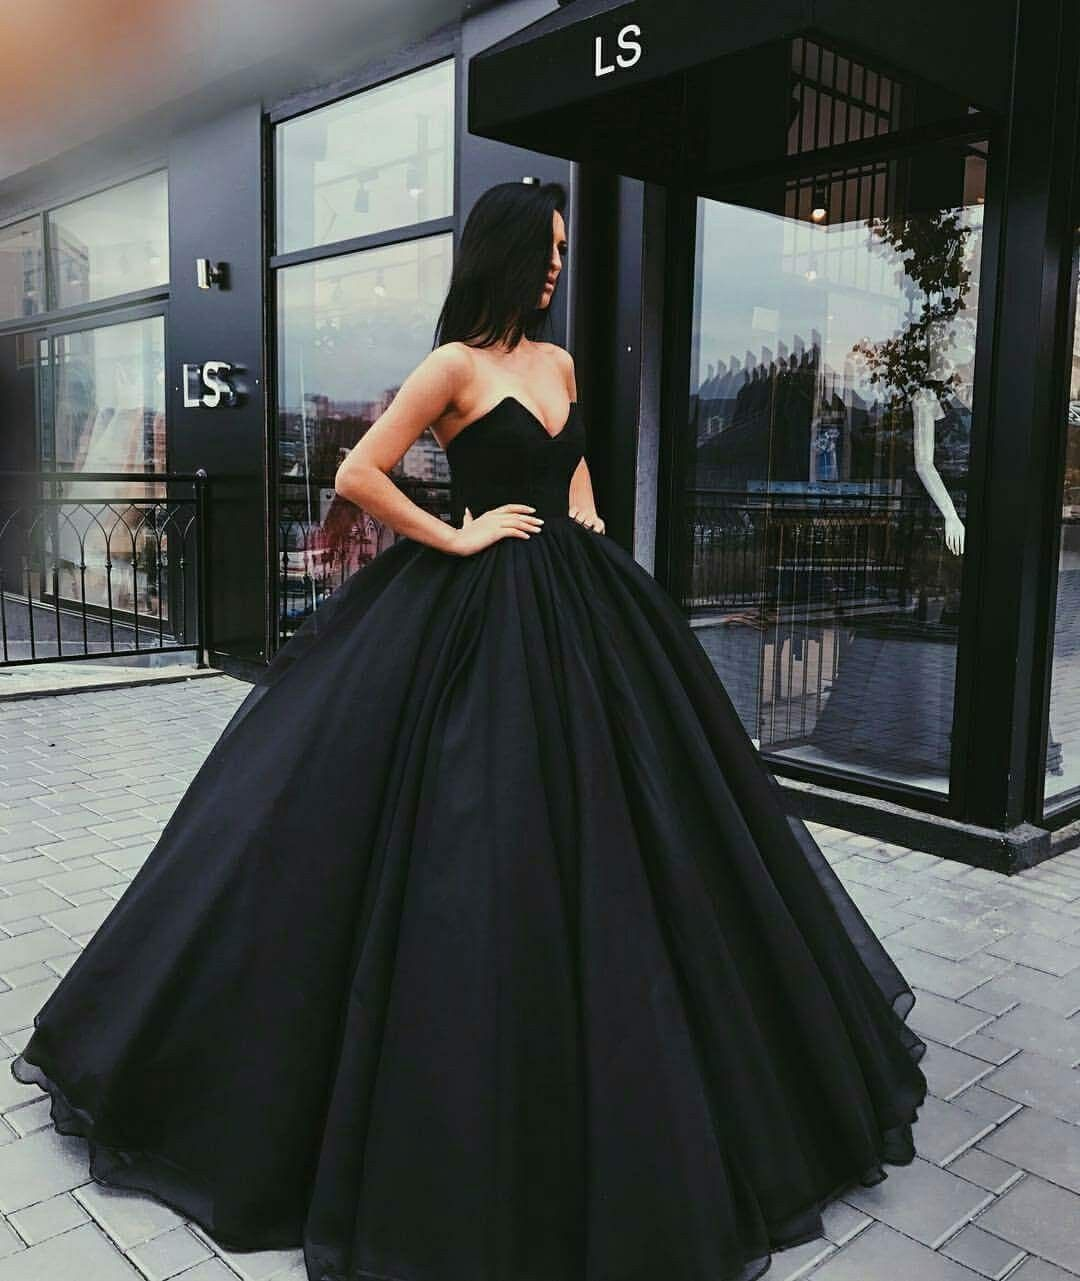 Pinterestrhirhinno r o b e s pinterest prom gowns and clothes